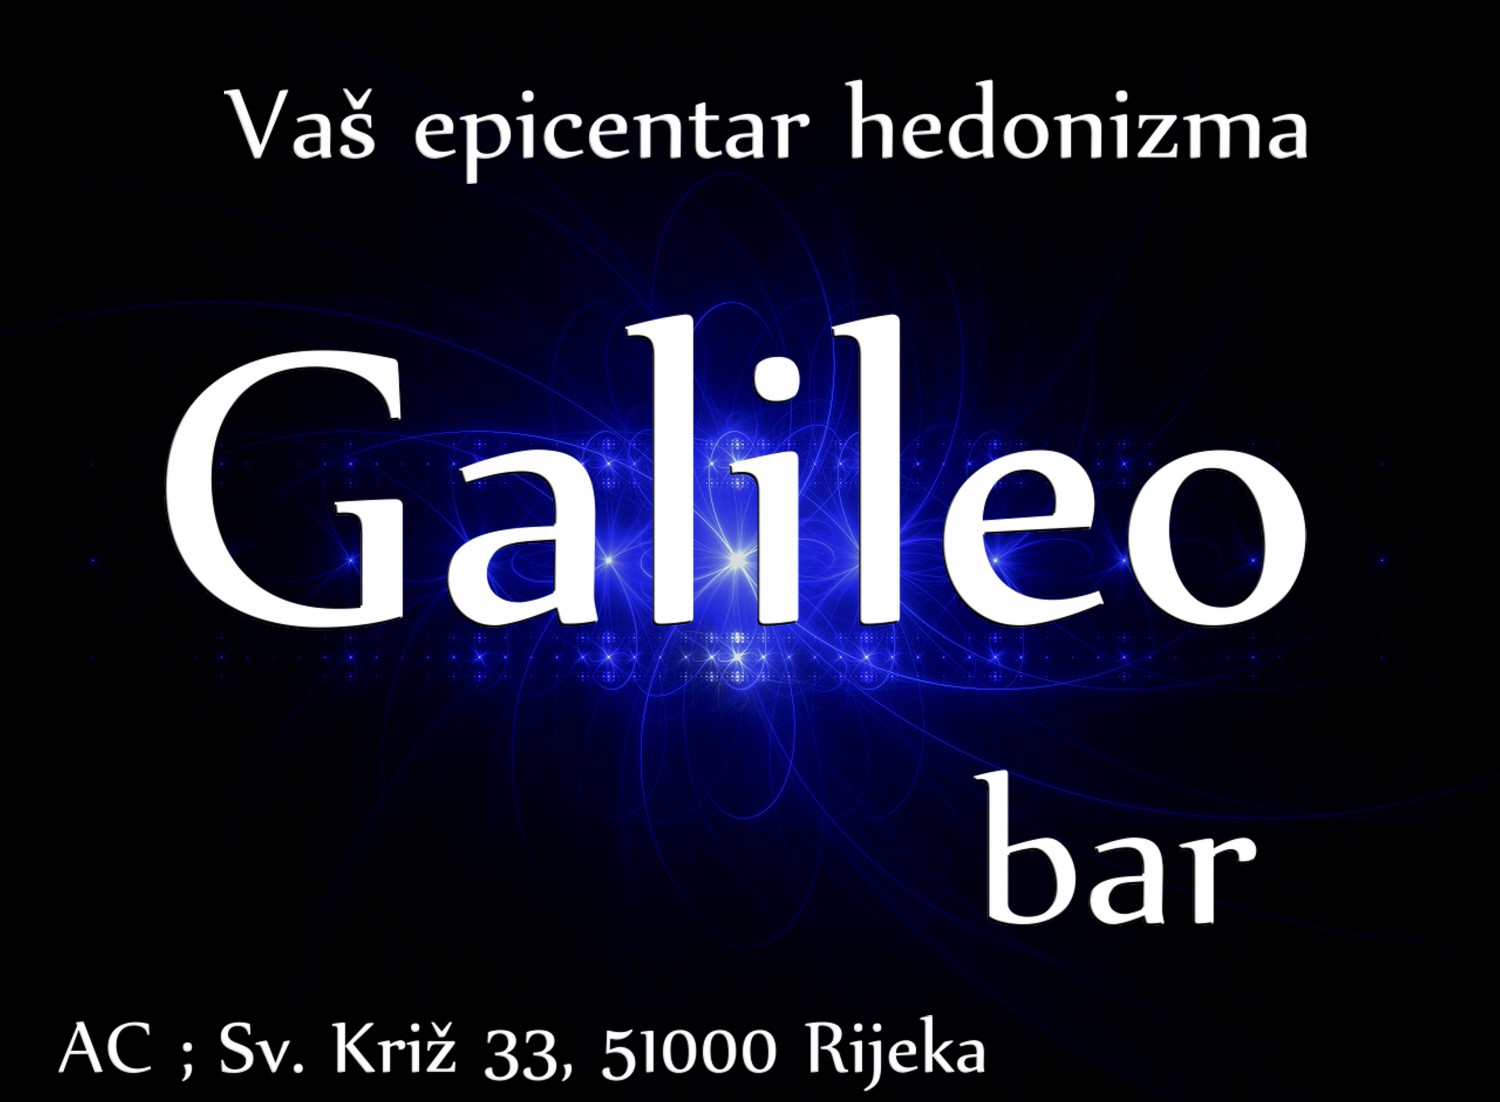 Galileo bar